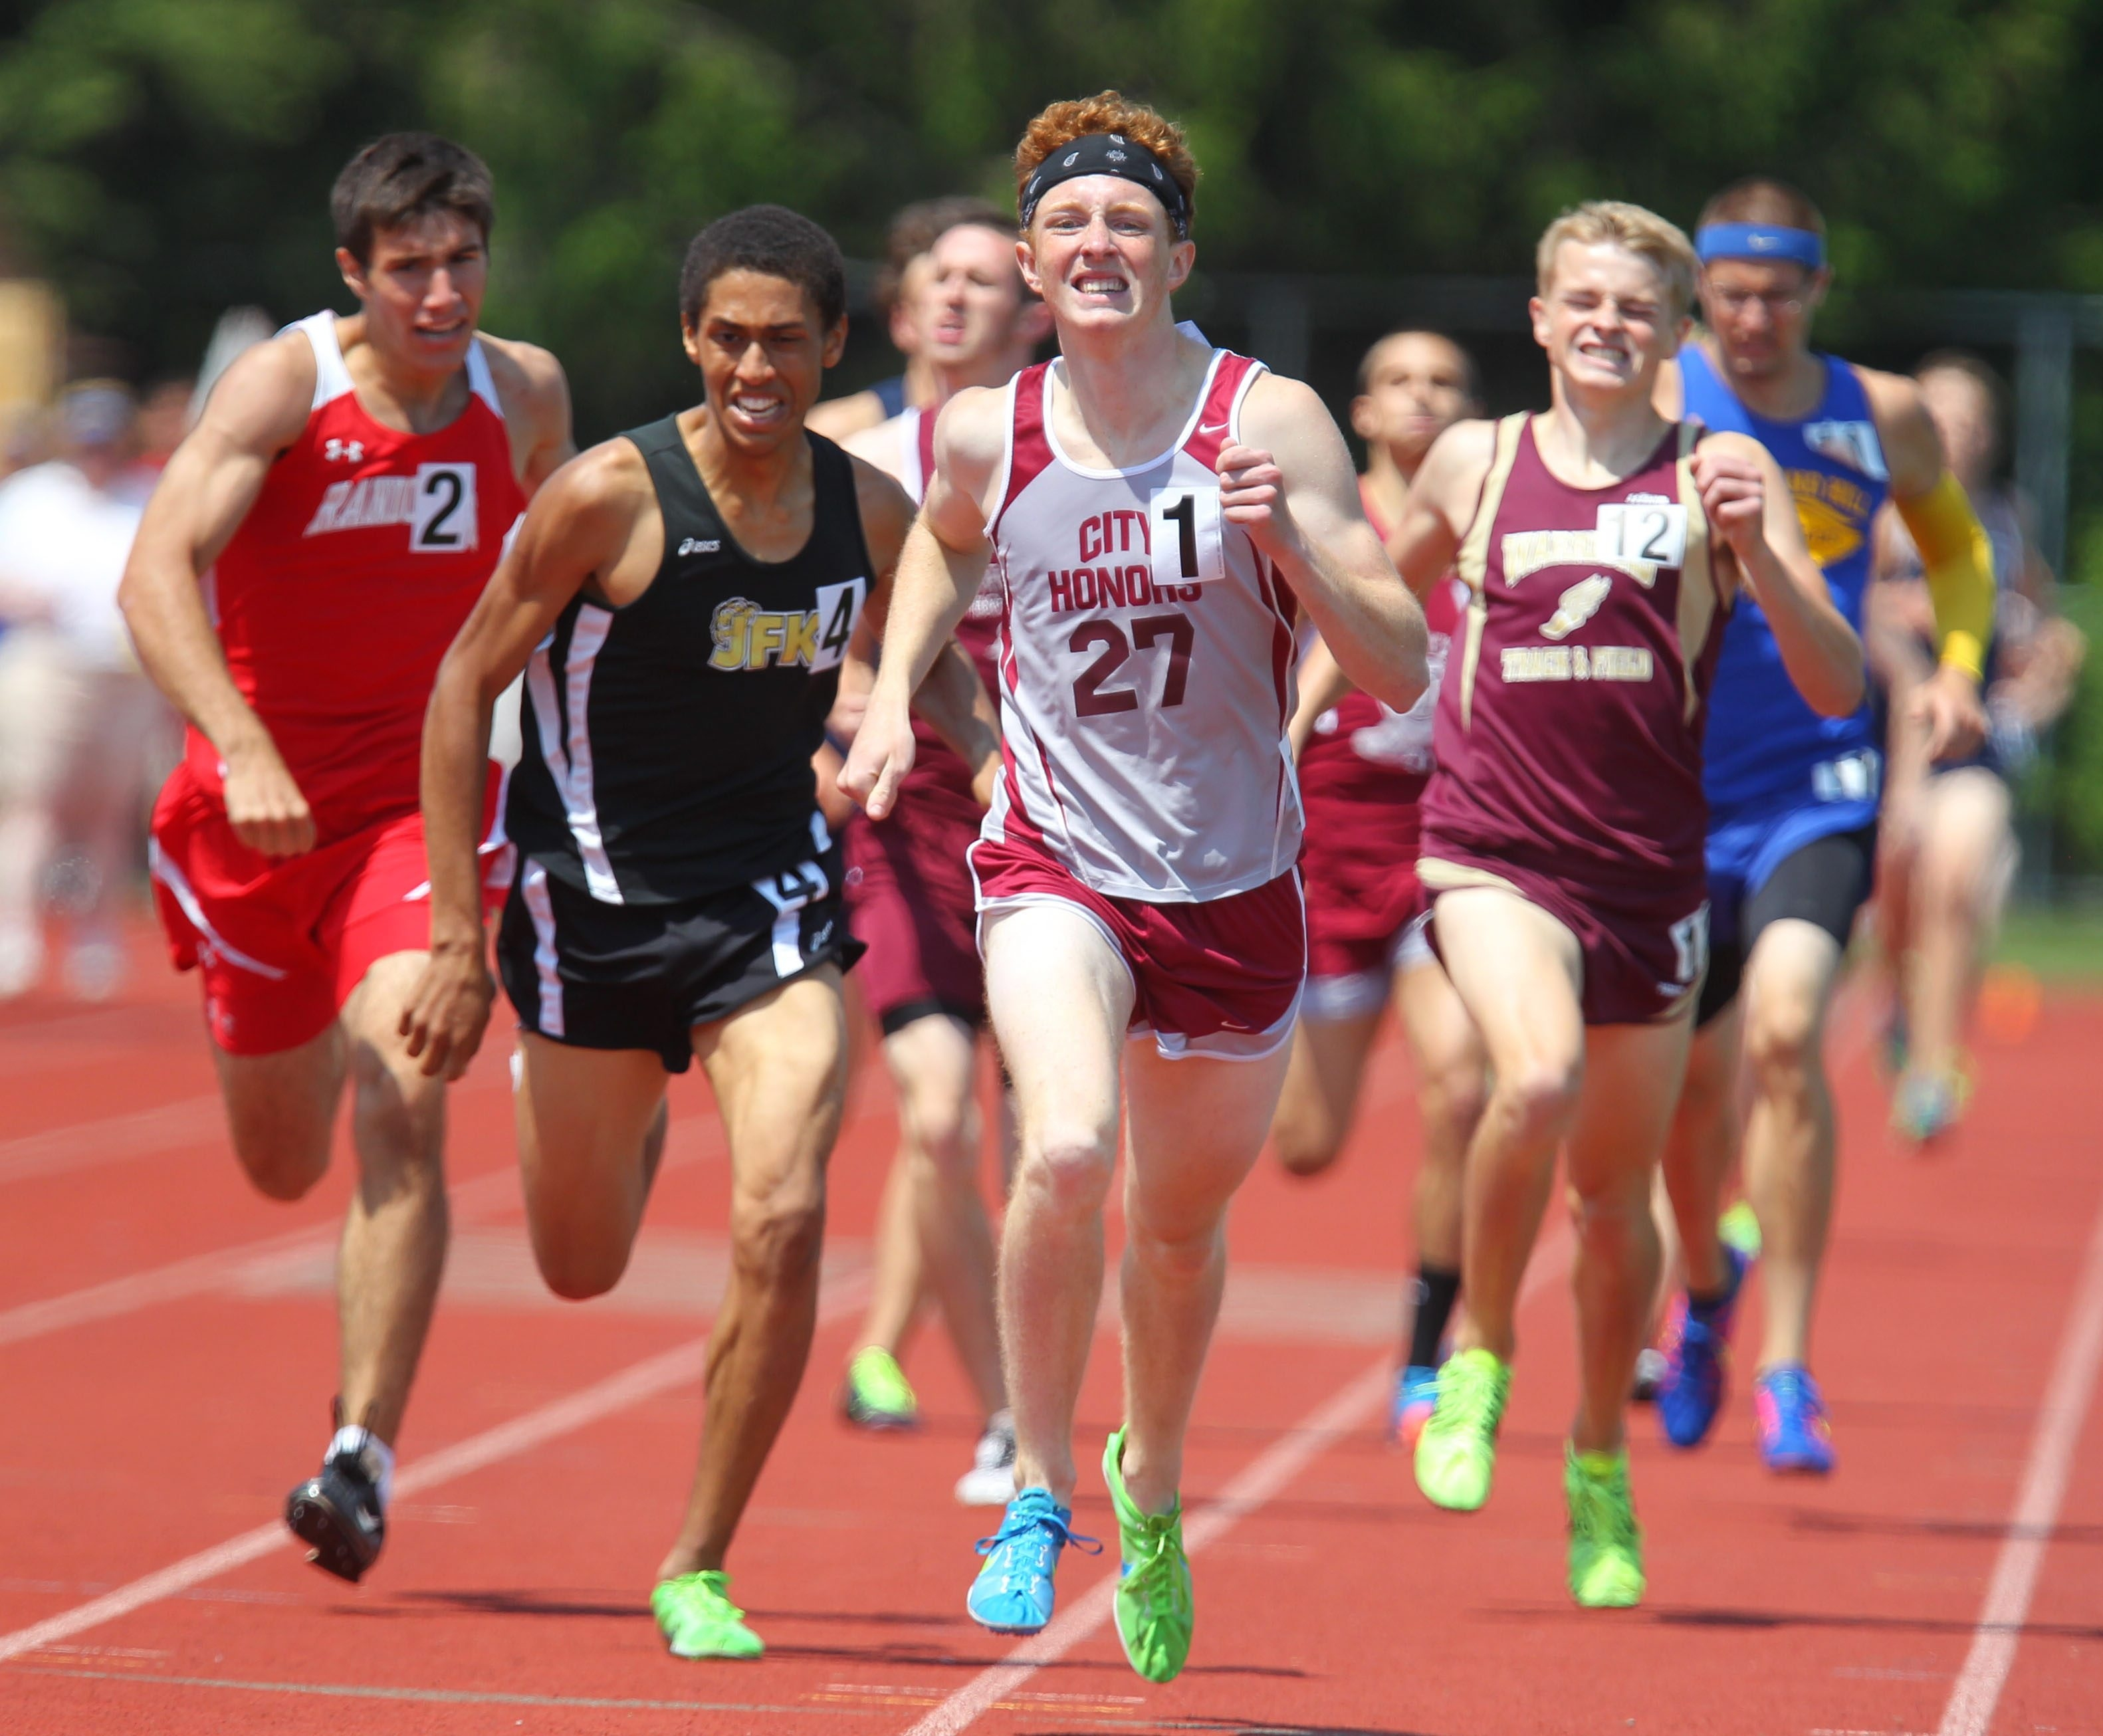 City Honors' Seamus Degan will compete in the Division II 800-meter dash at states after running to victory last weekend at the Section VI meet. (Mark Mulville / Buffalo News)